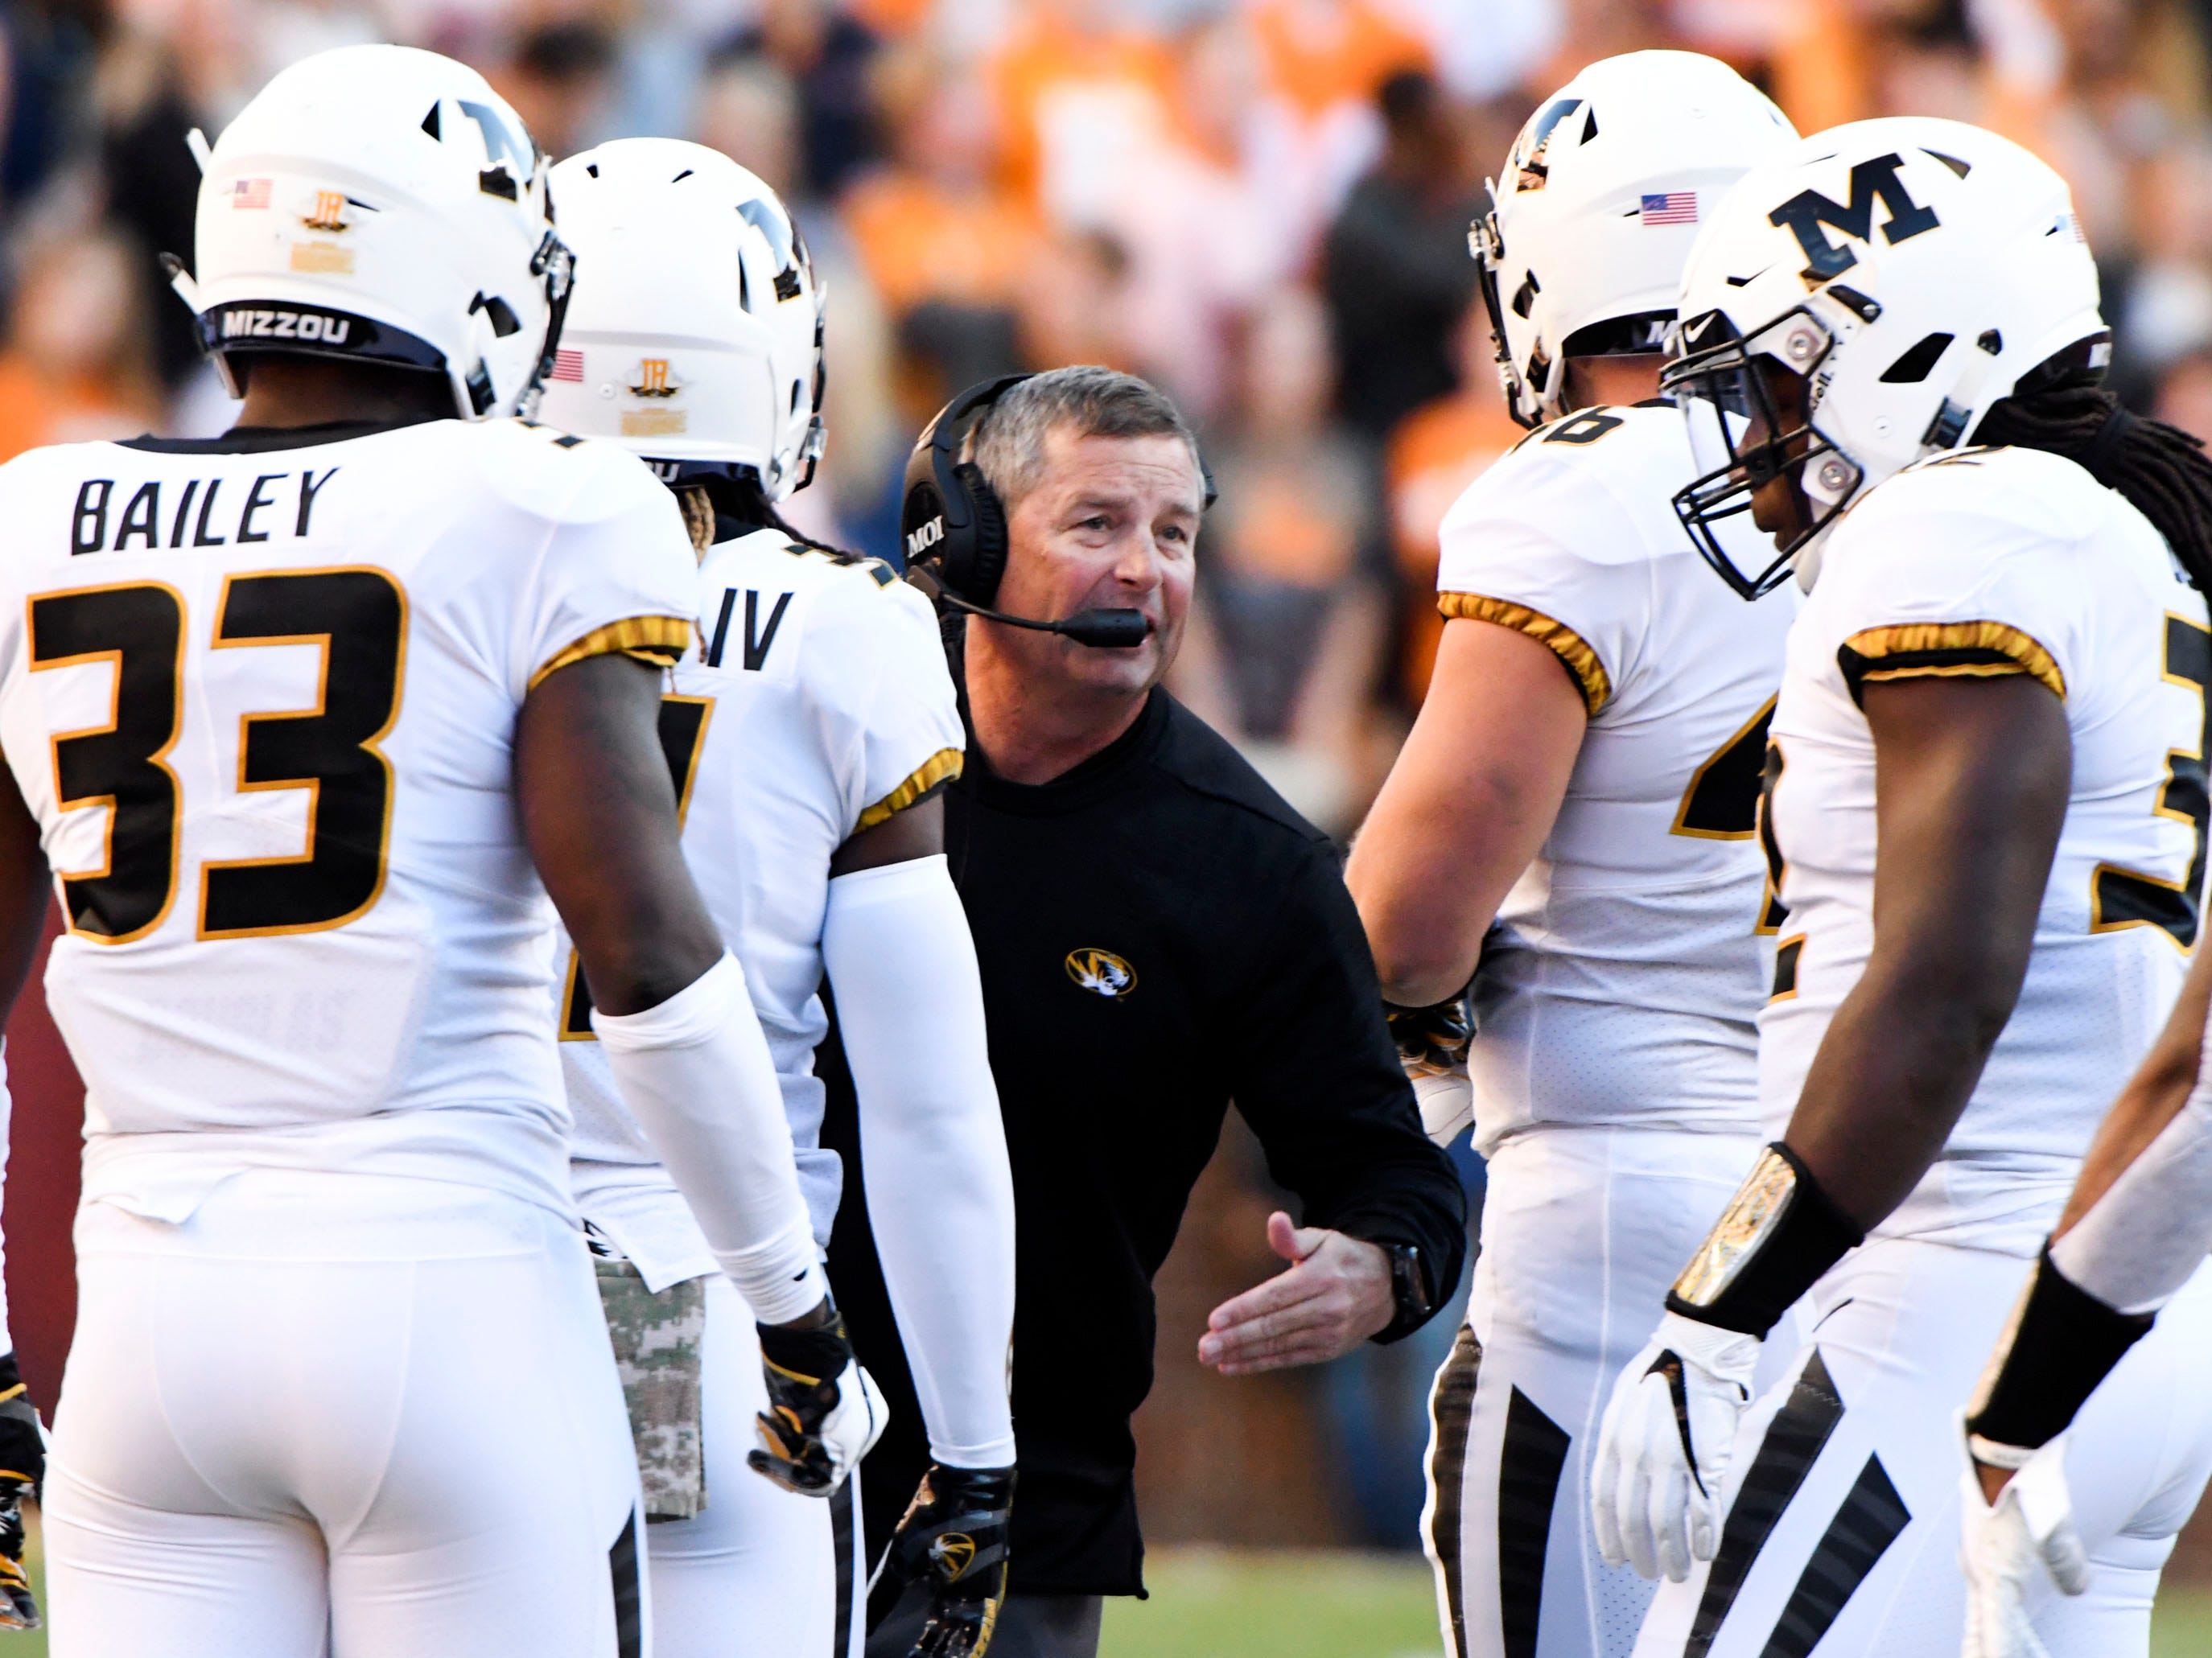 Missouri assistant coach Andy Hill during the Tennessee and Missouri football game on Saturday, November 17, 2018.